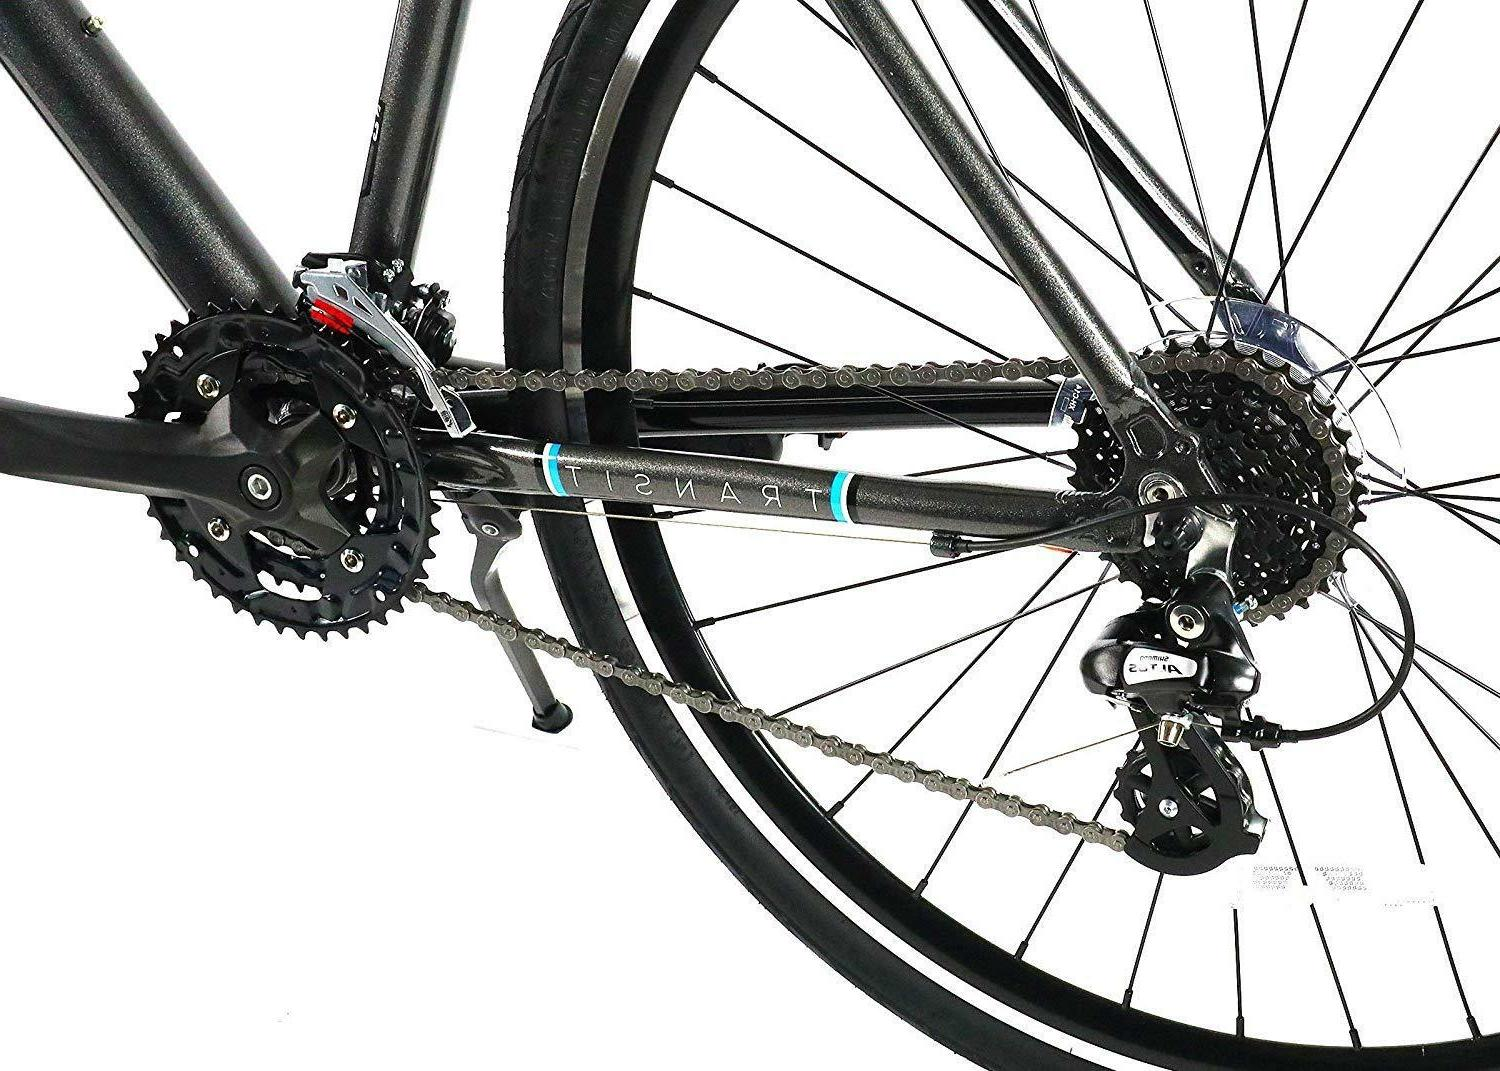 ZF Bikes Hybrid Alloy Bike Butted Frame - Gray